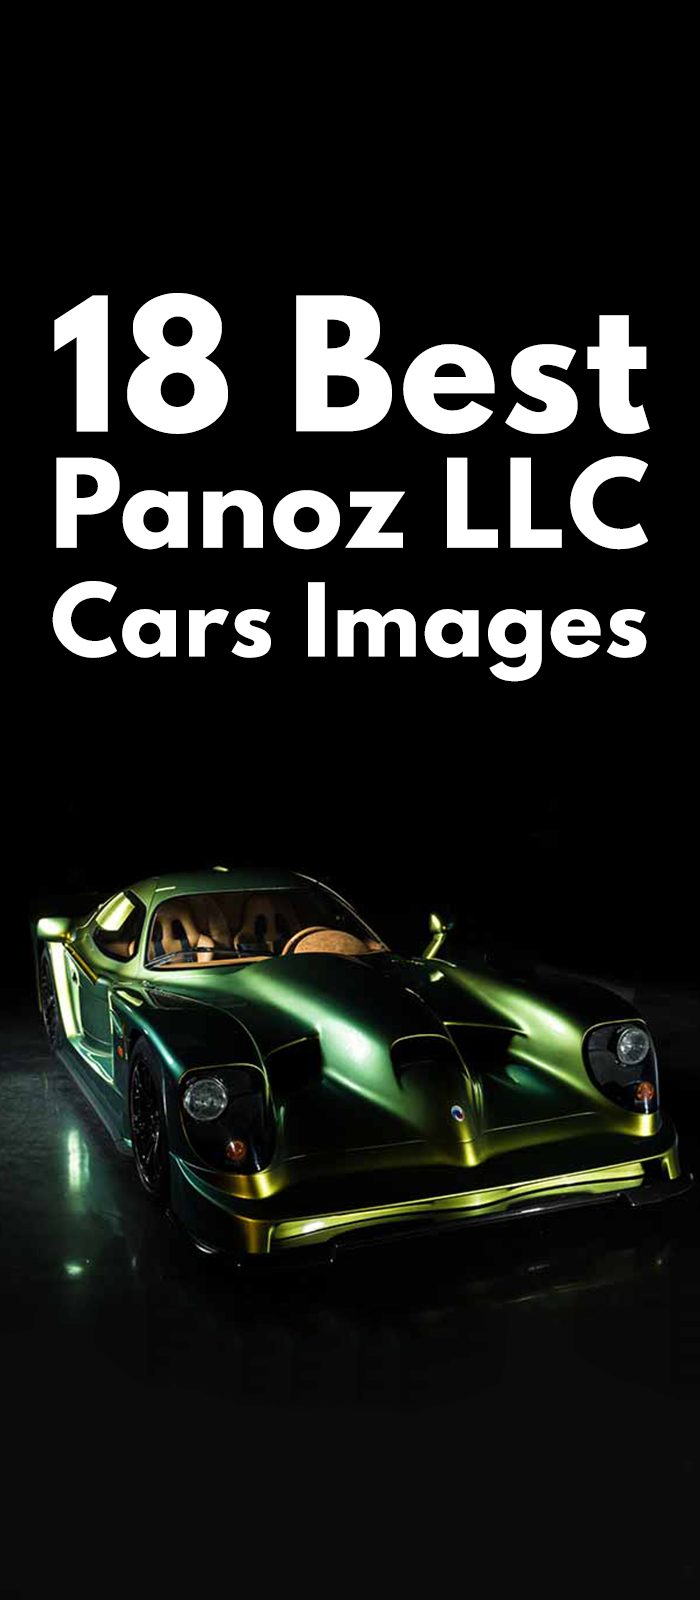 18 Best Latest Panoz LLC Cars Images!